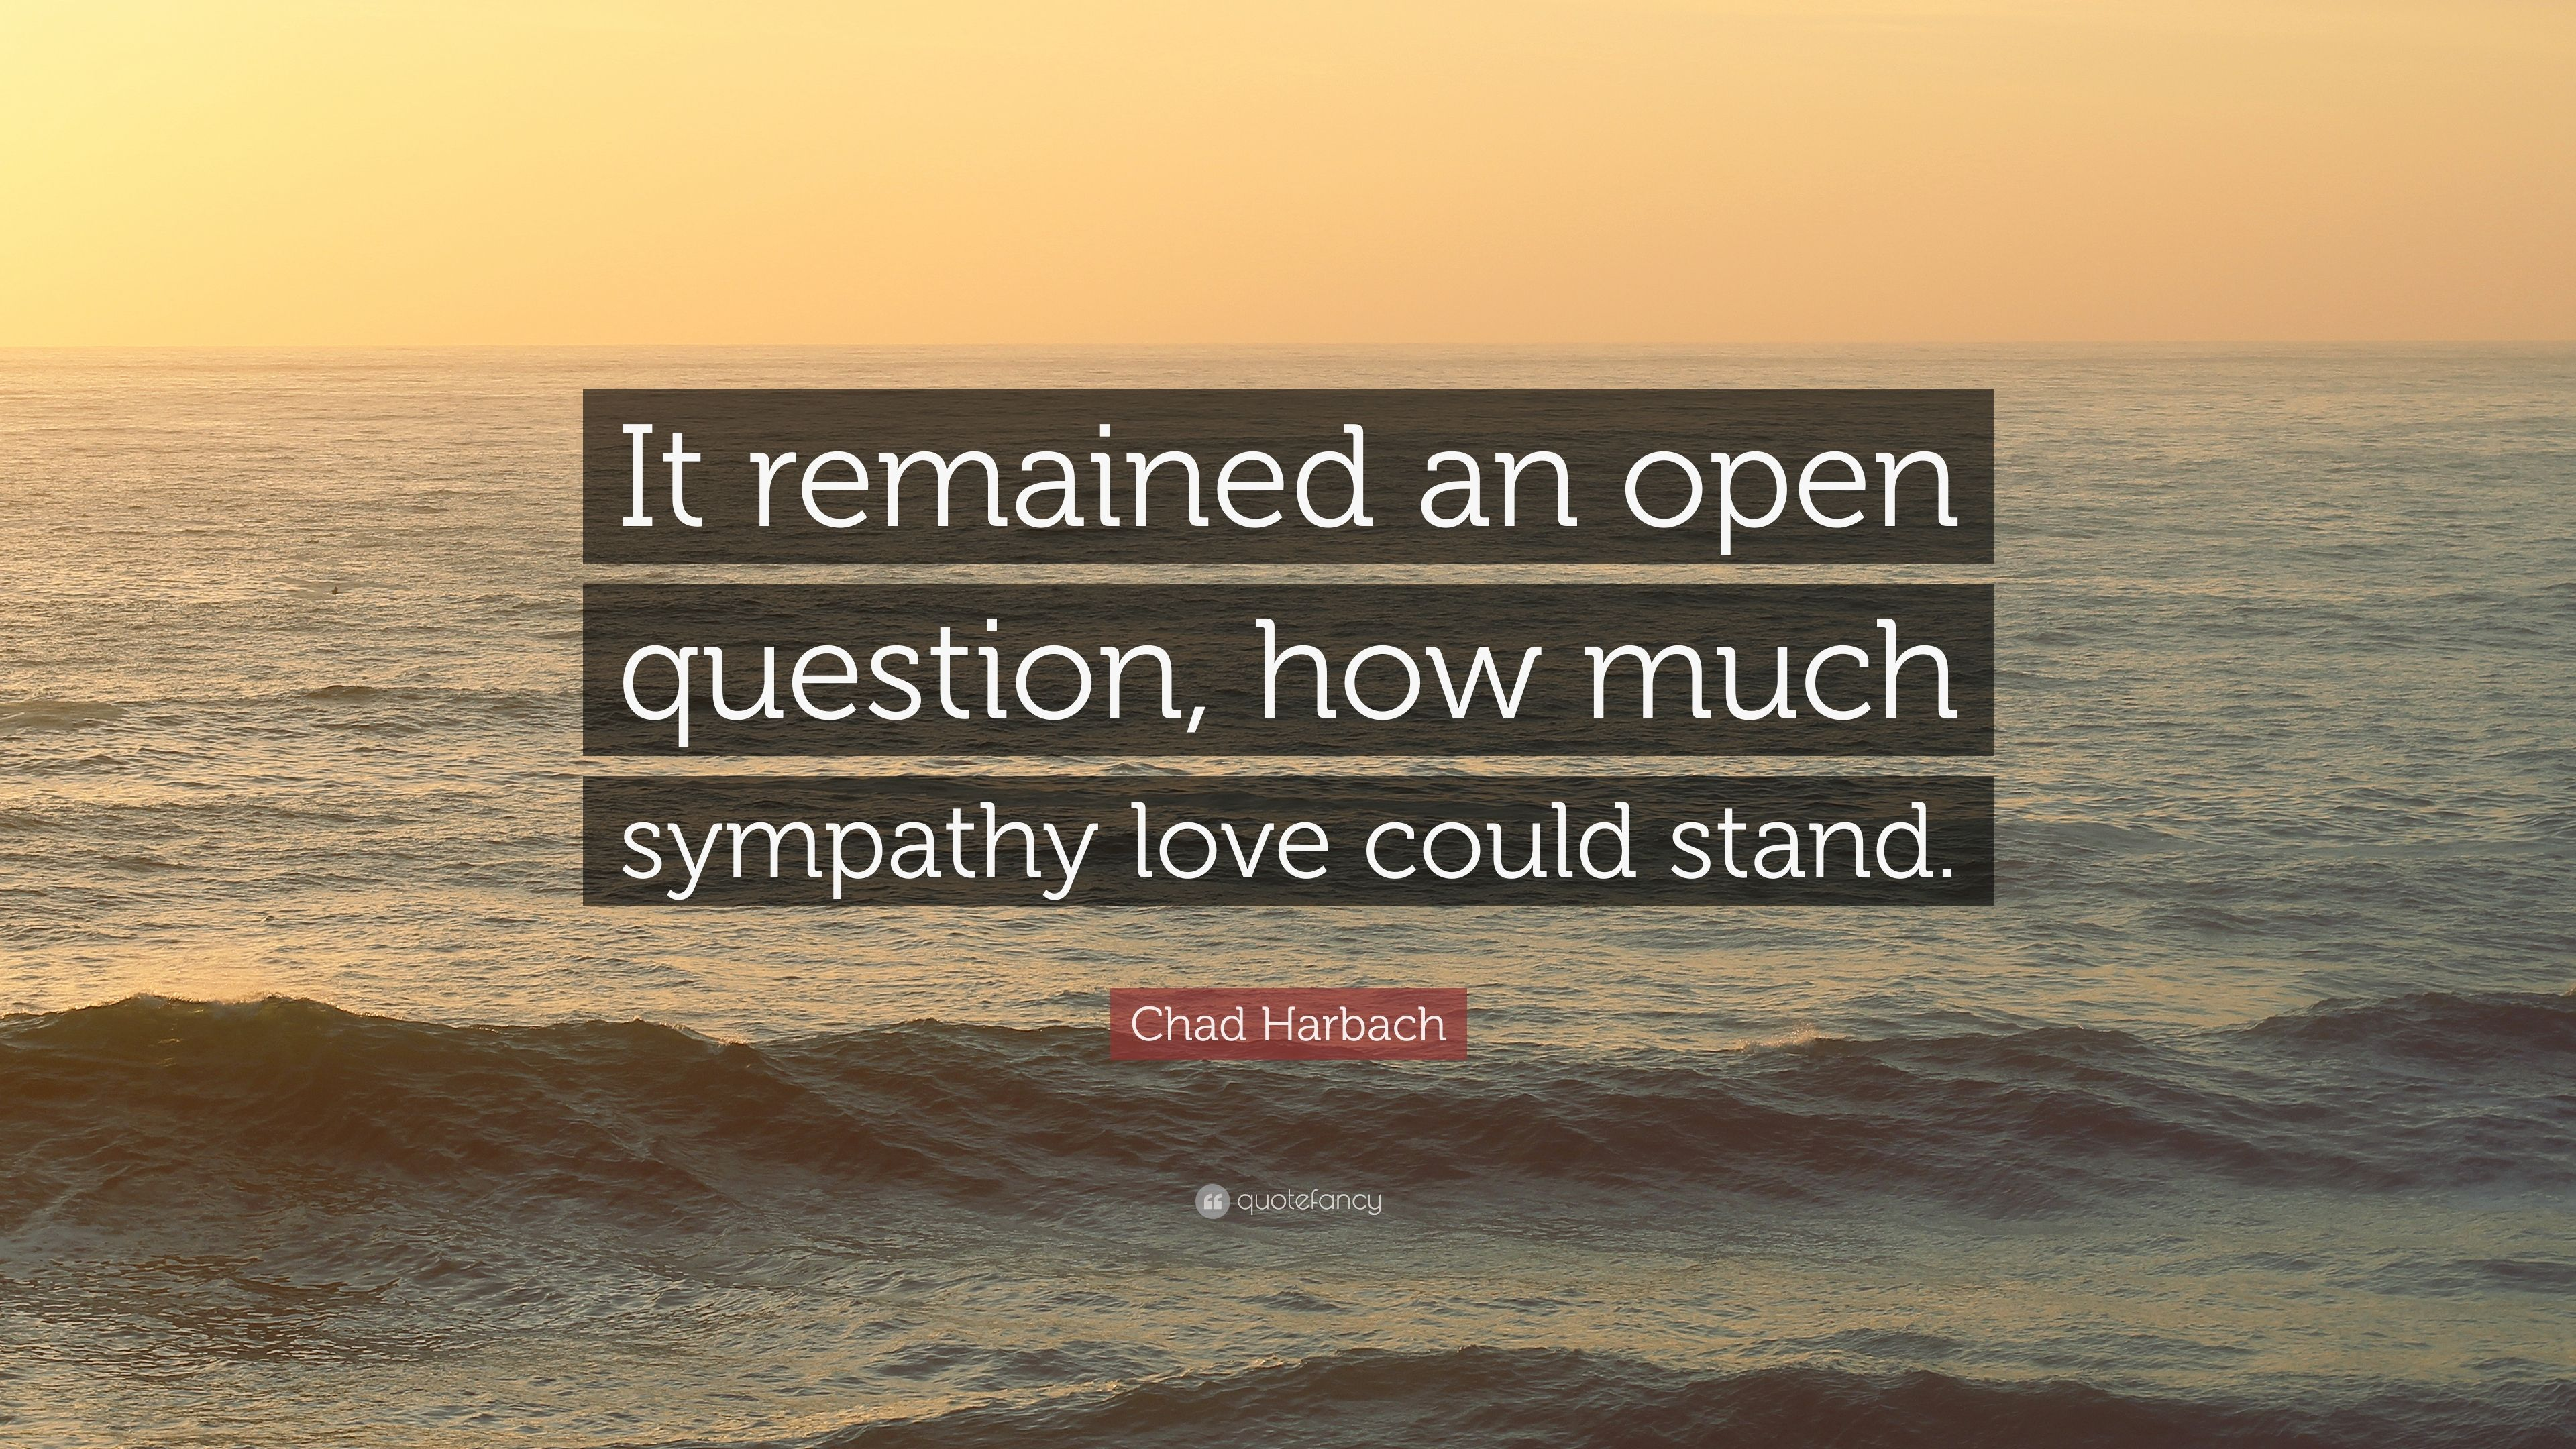 Chad harbach quote it remained an open question how much sympathy chad harbach quote it remained an open question how much sympathy love could thecheapjerseys Gallery